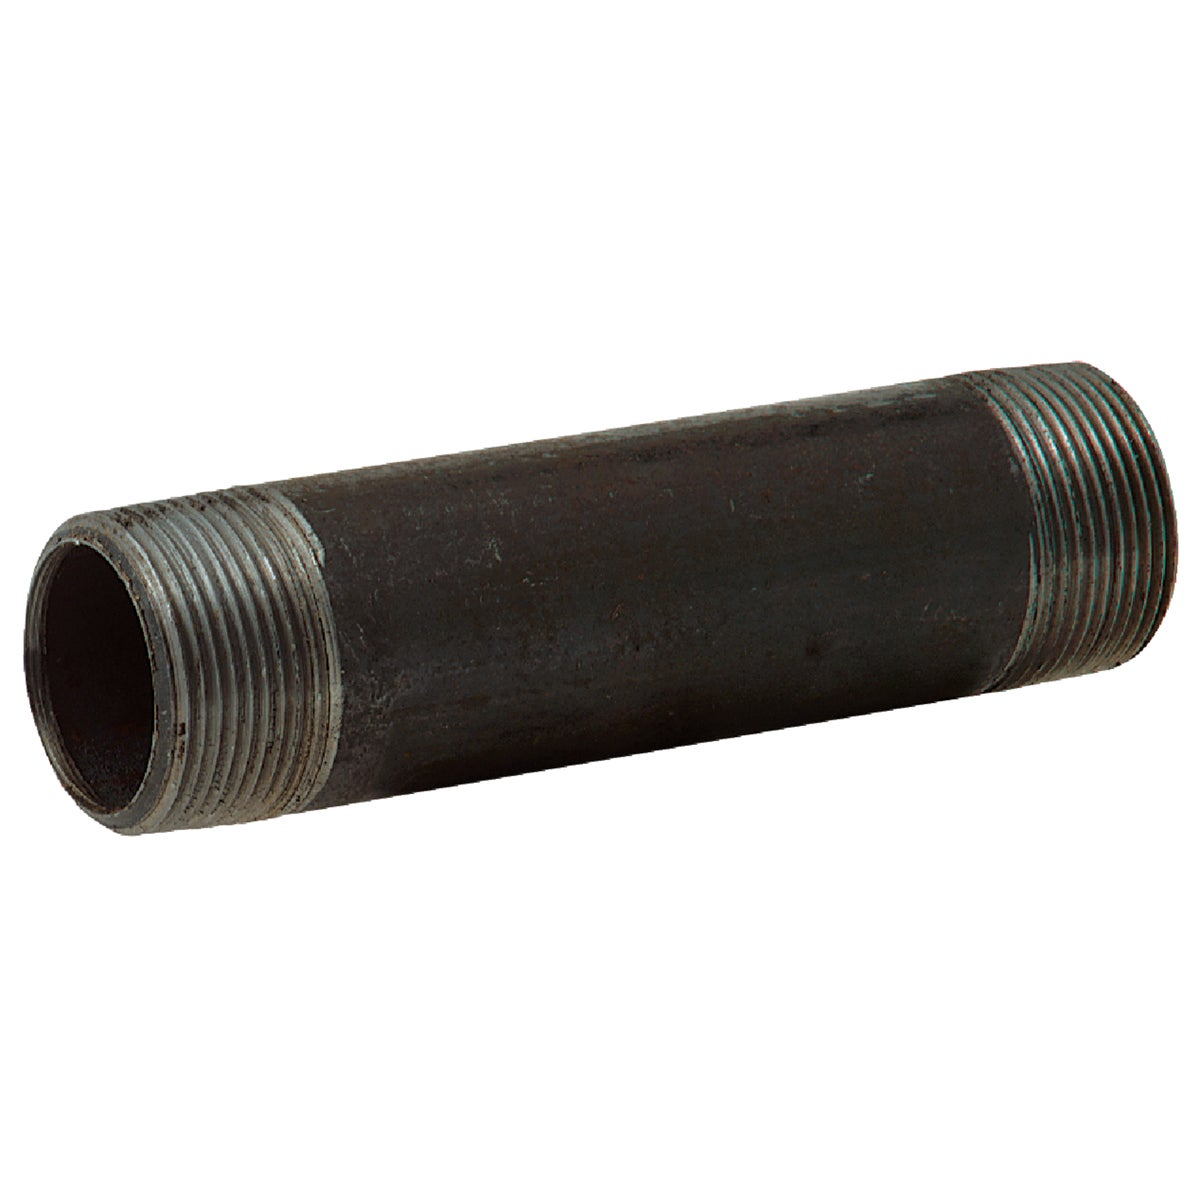 1-1/4X6 BLACK NIPPLE - 8700142501 by Anvil International